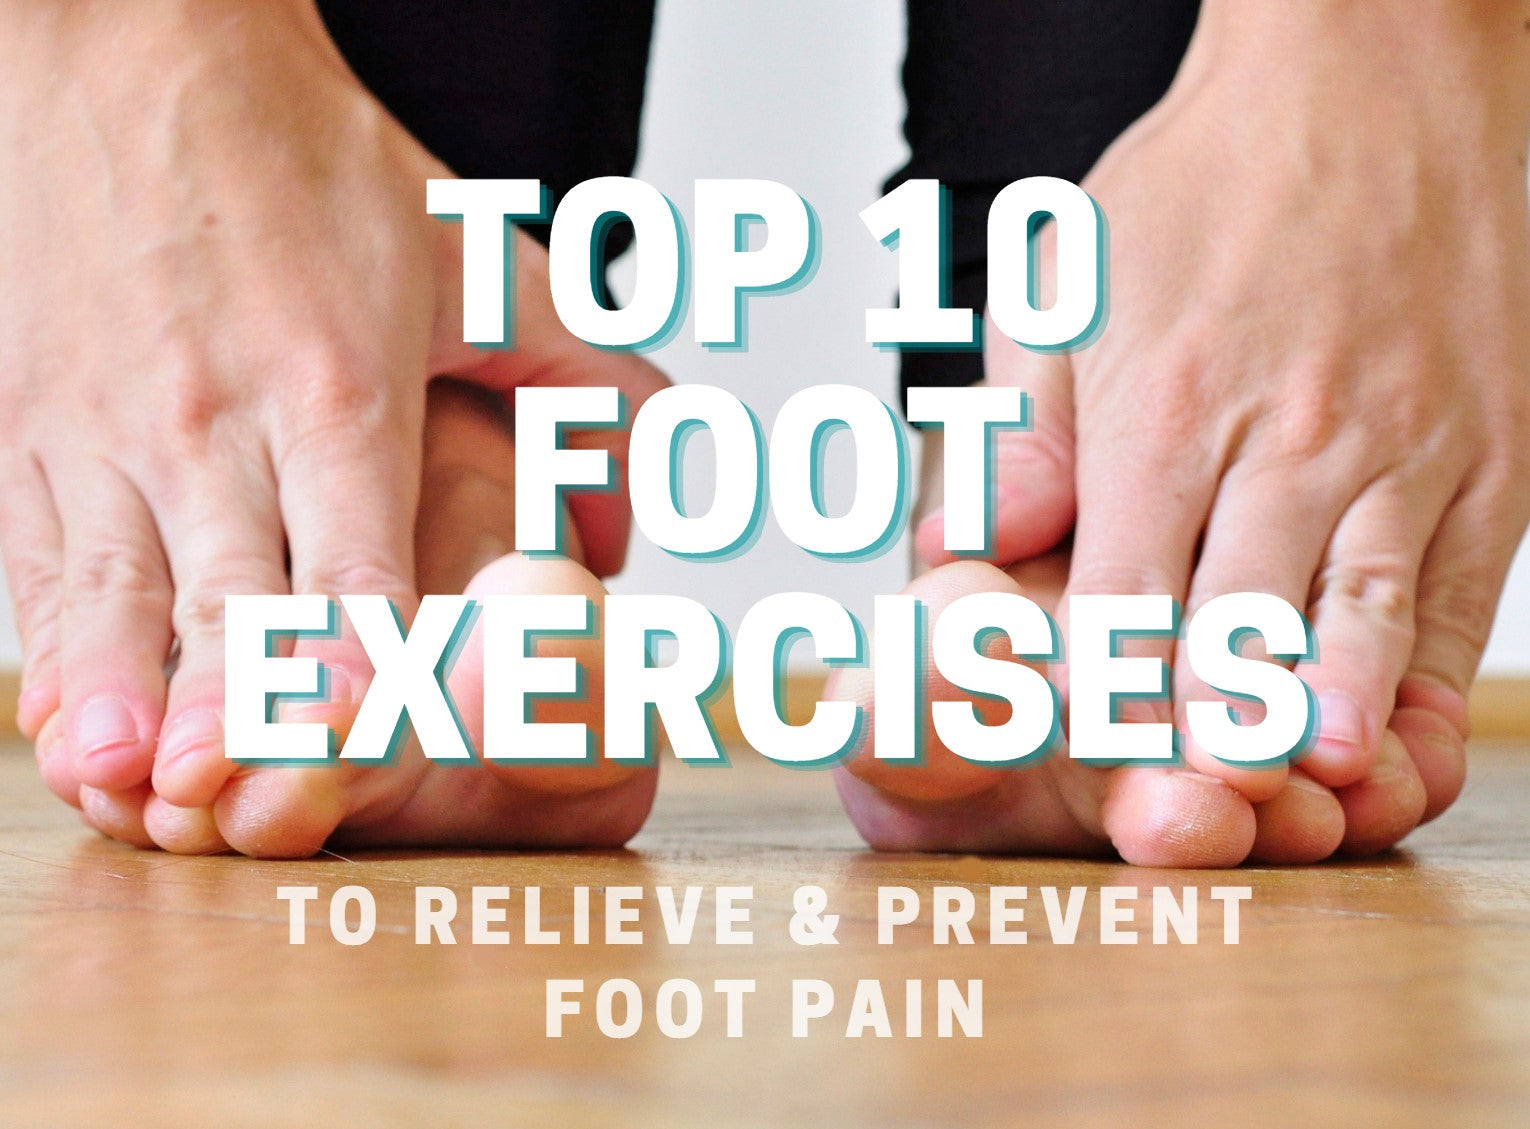 Top 10 Foot Exercises to Prevent & Relieve Foot Pain